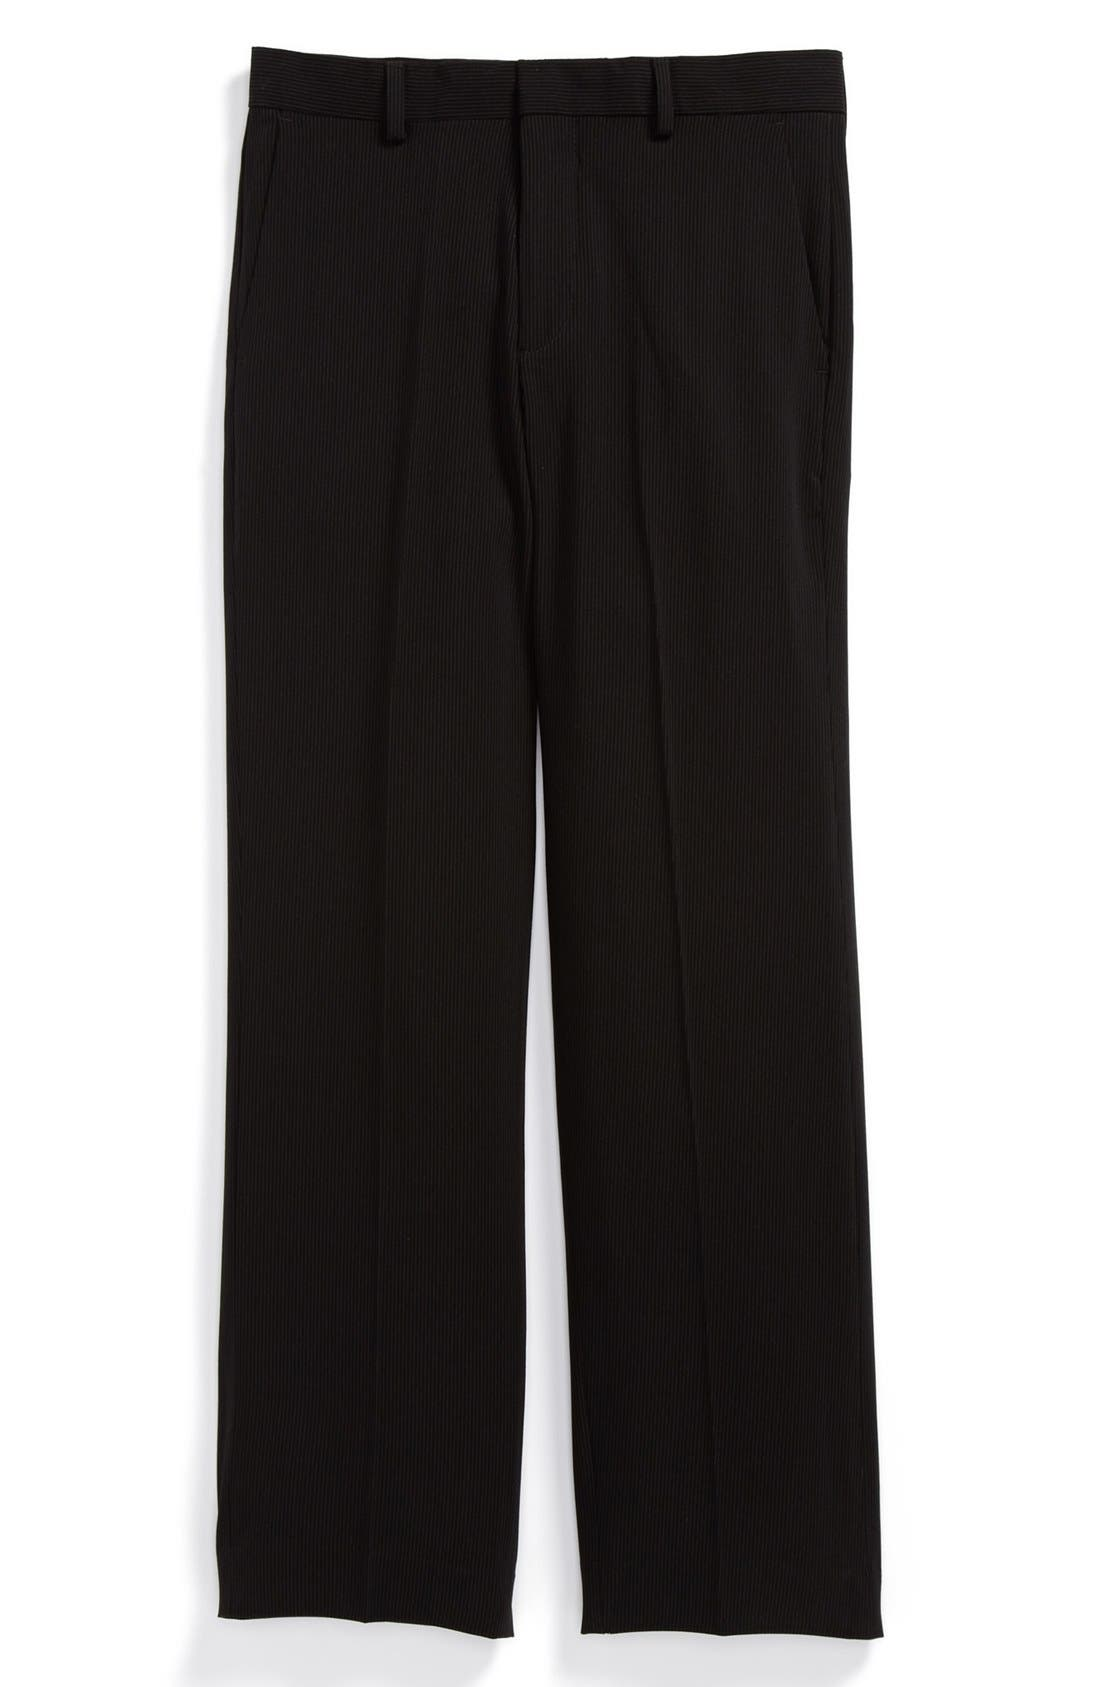 Alternate Image 1 Selected - C2 by Calibrate Pinstripe Dress Pants (Big Boys)